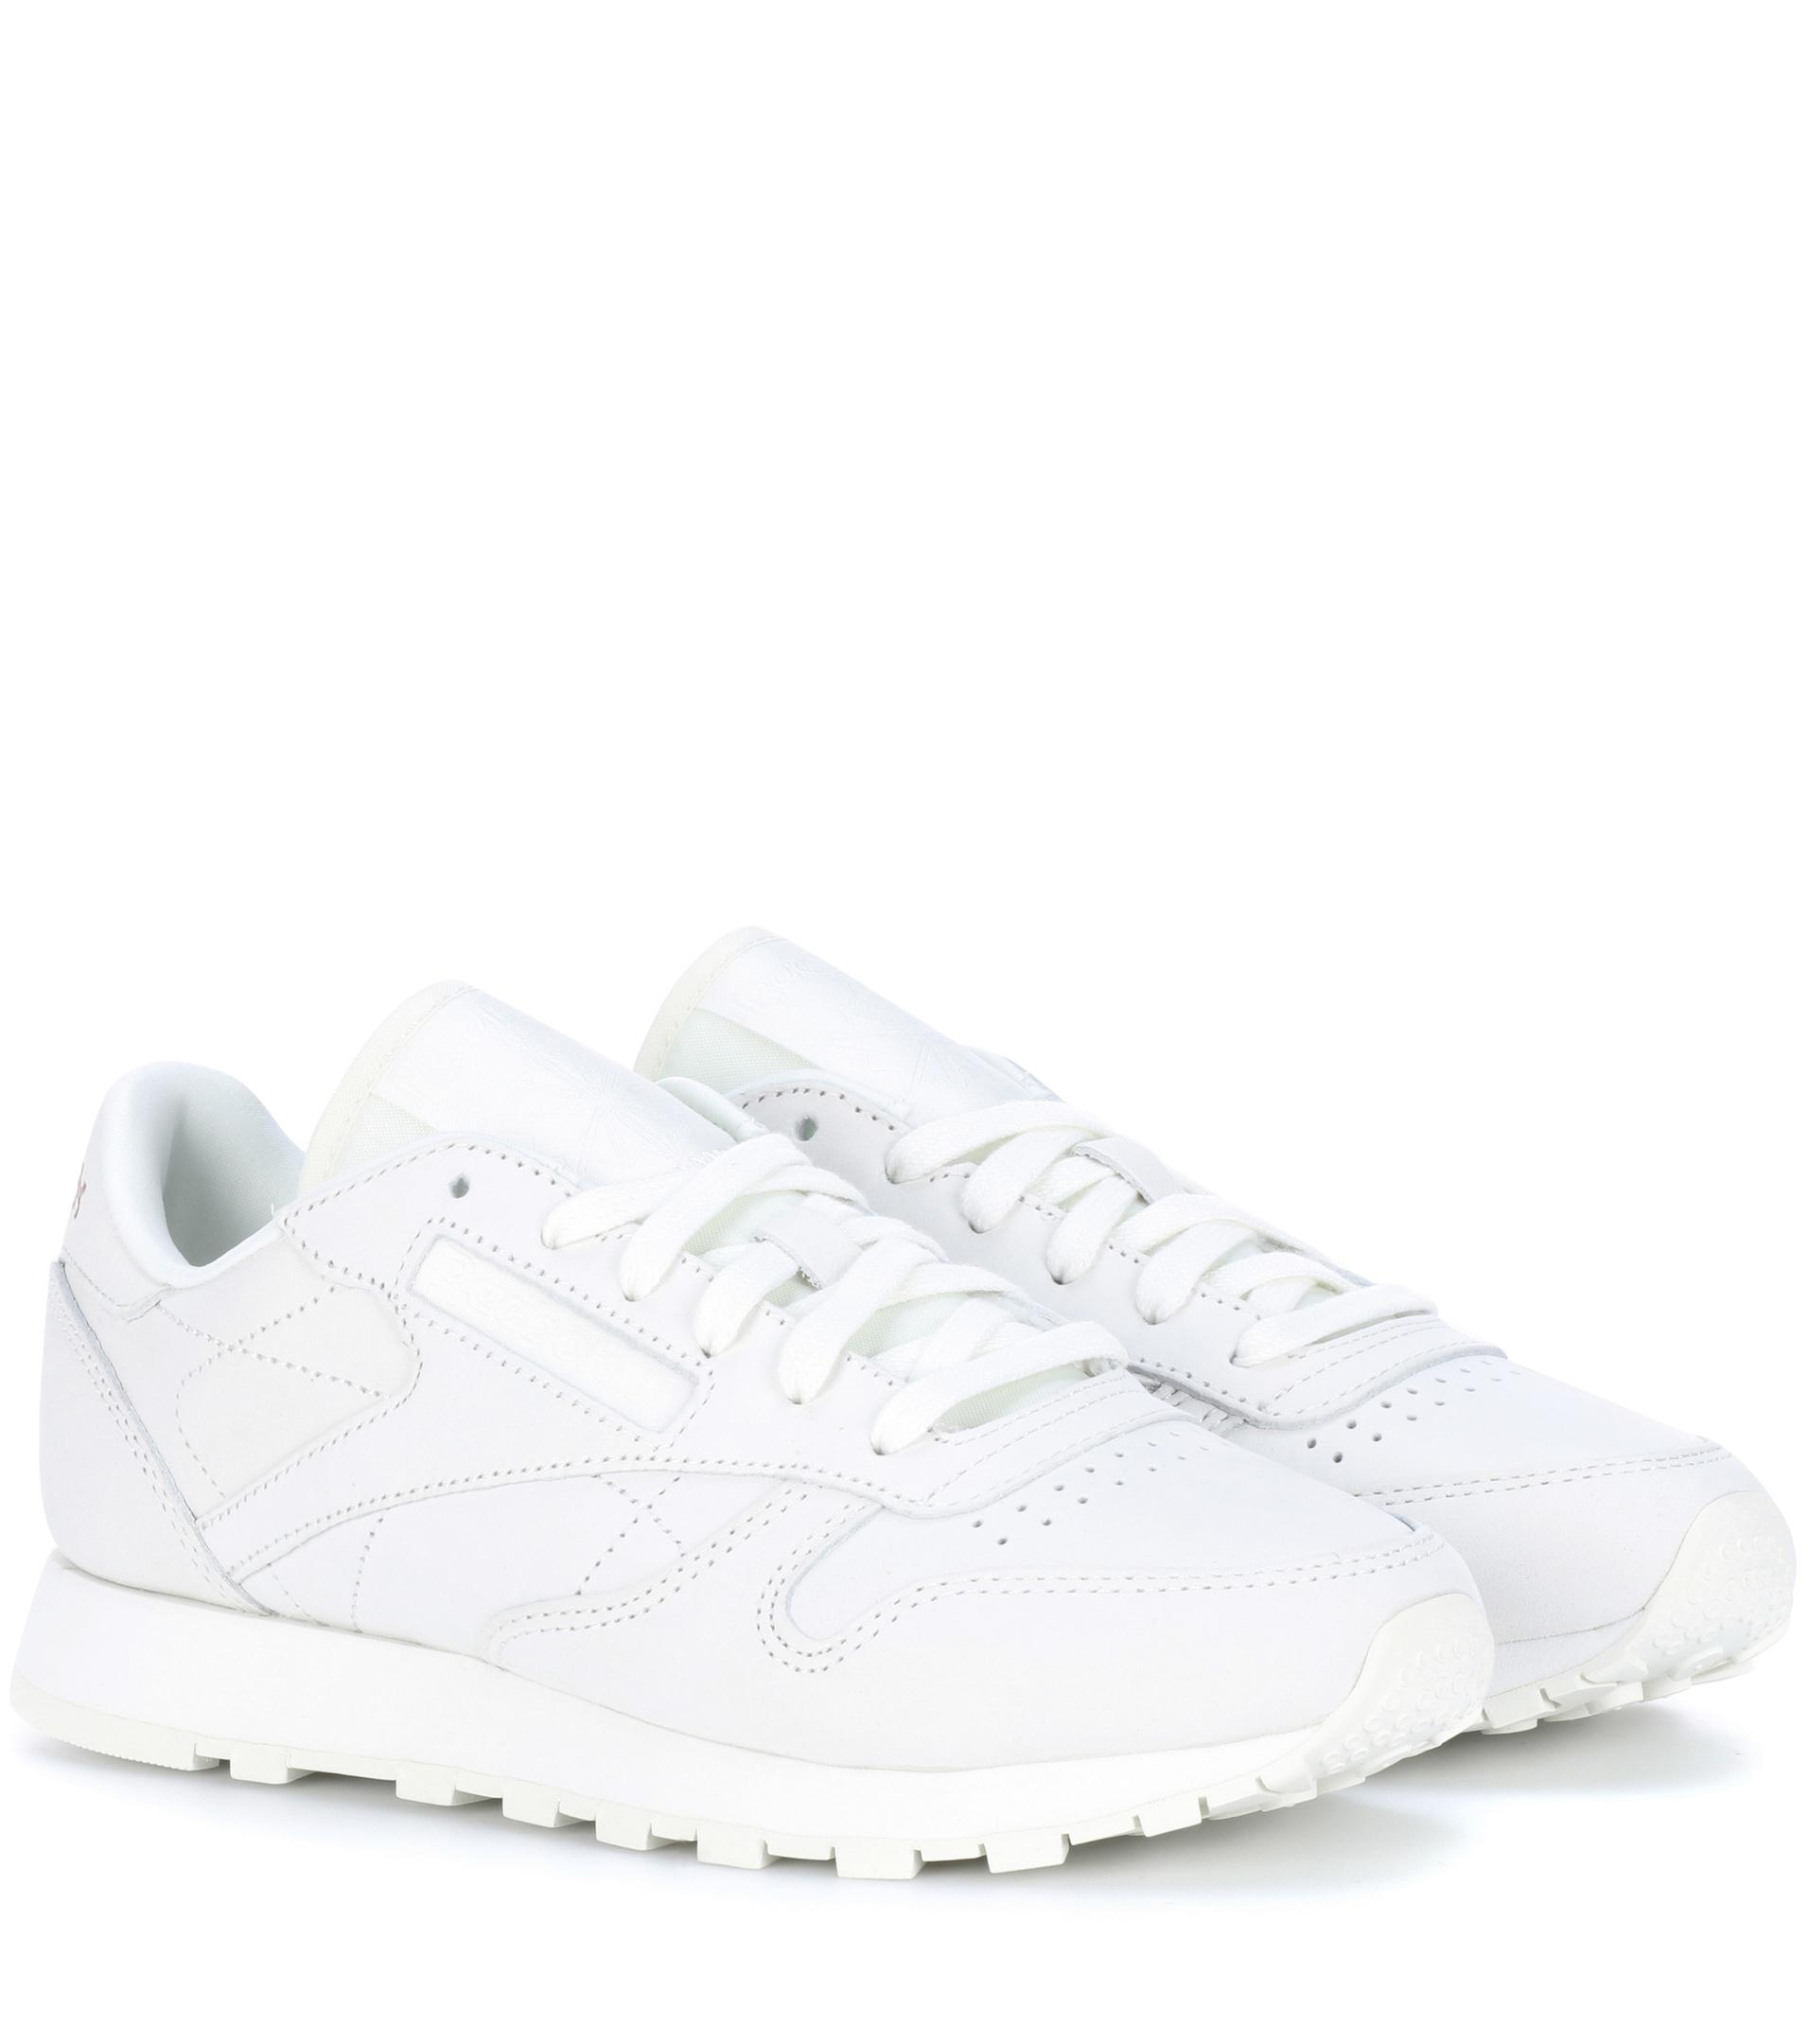 01cc49895a Reebok White Classic Leather Fbt Suede Sneakers